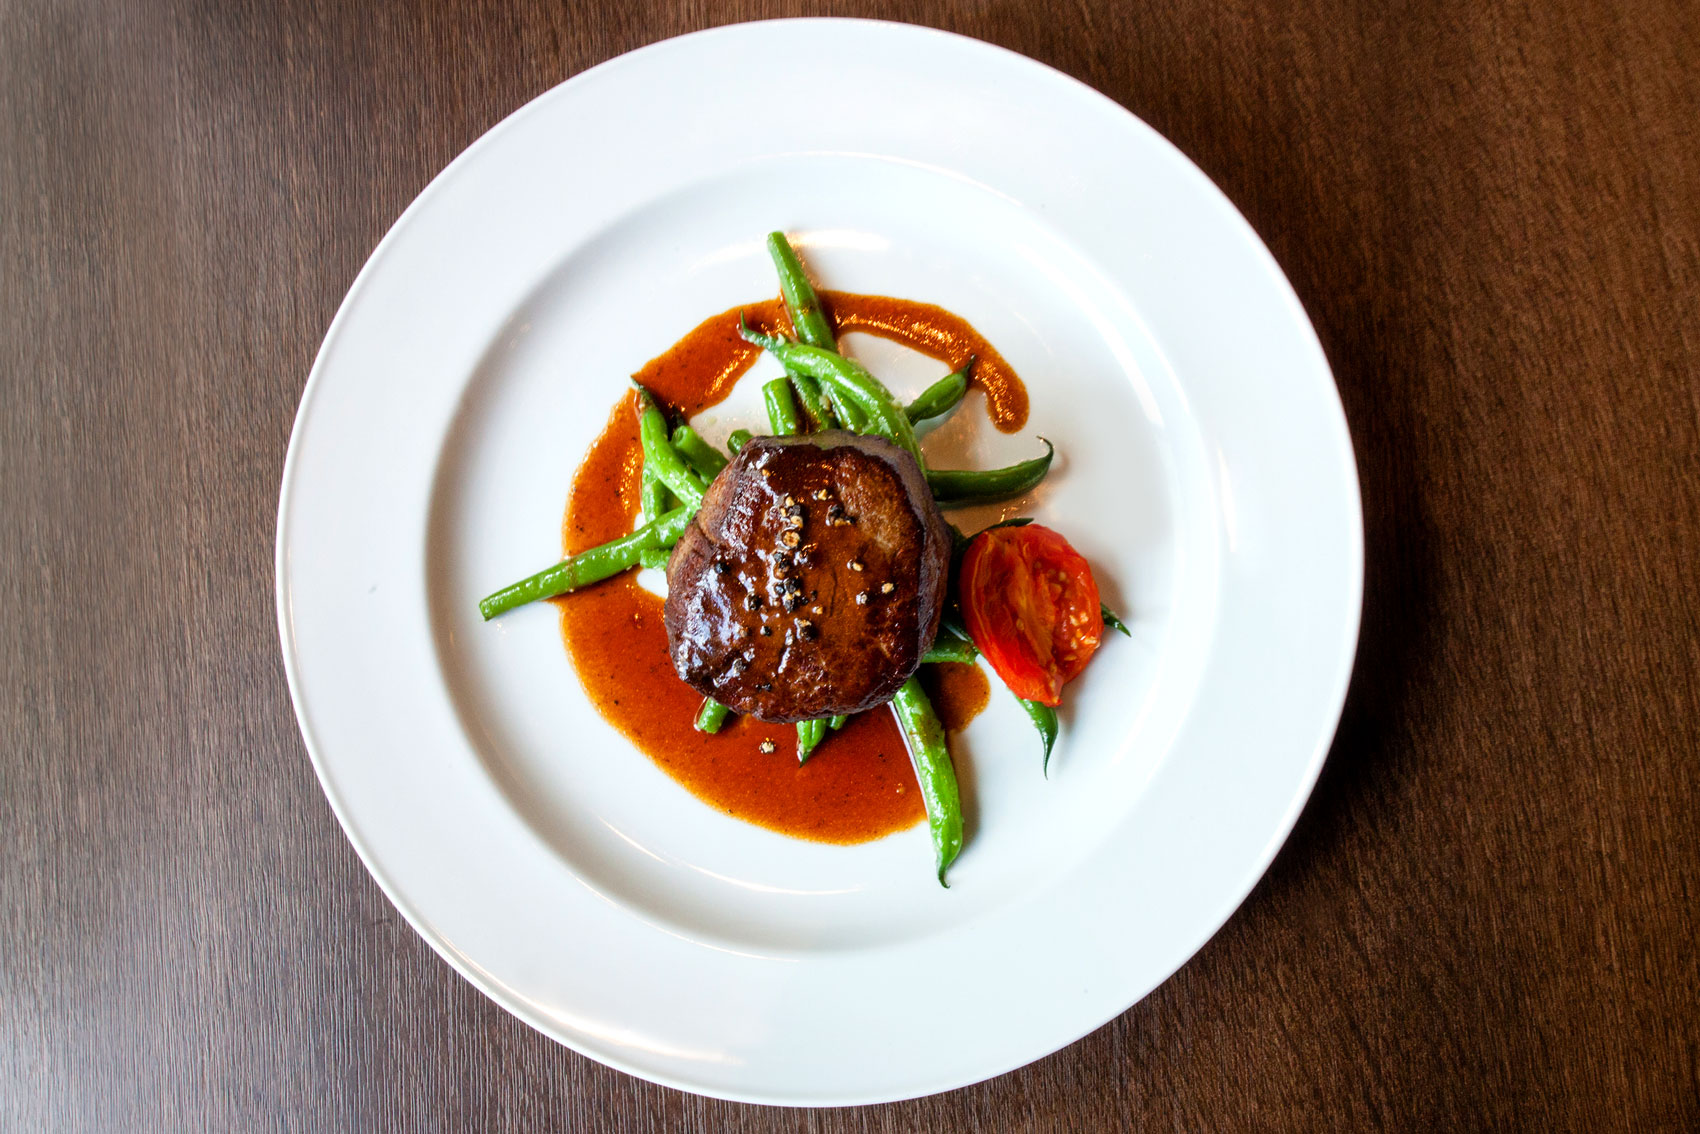 5-beef-tenderloin-blog